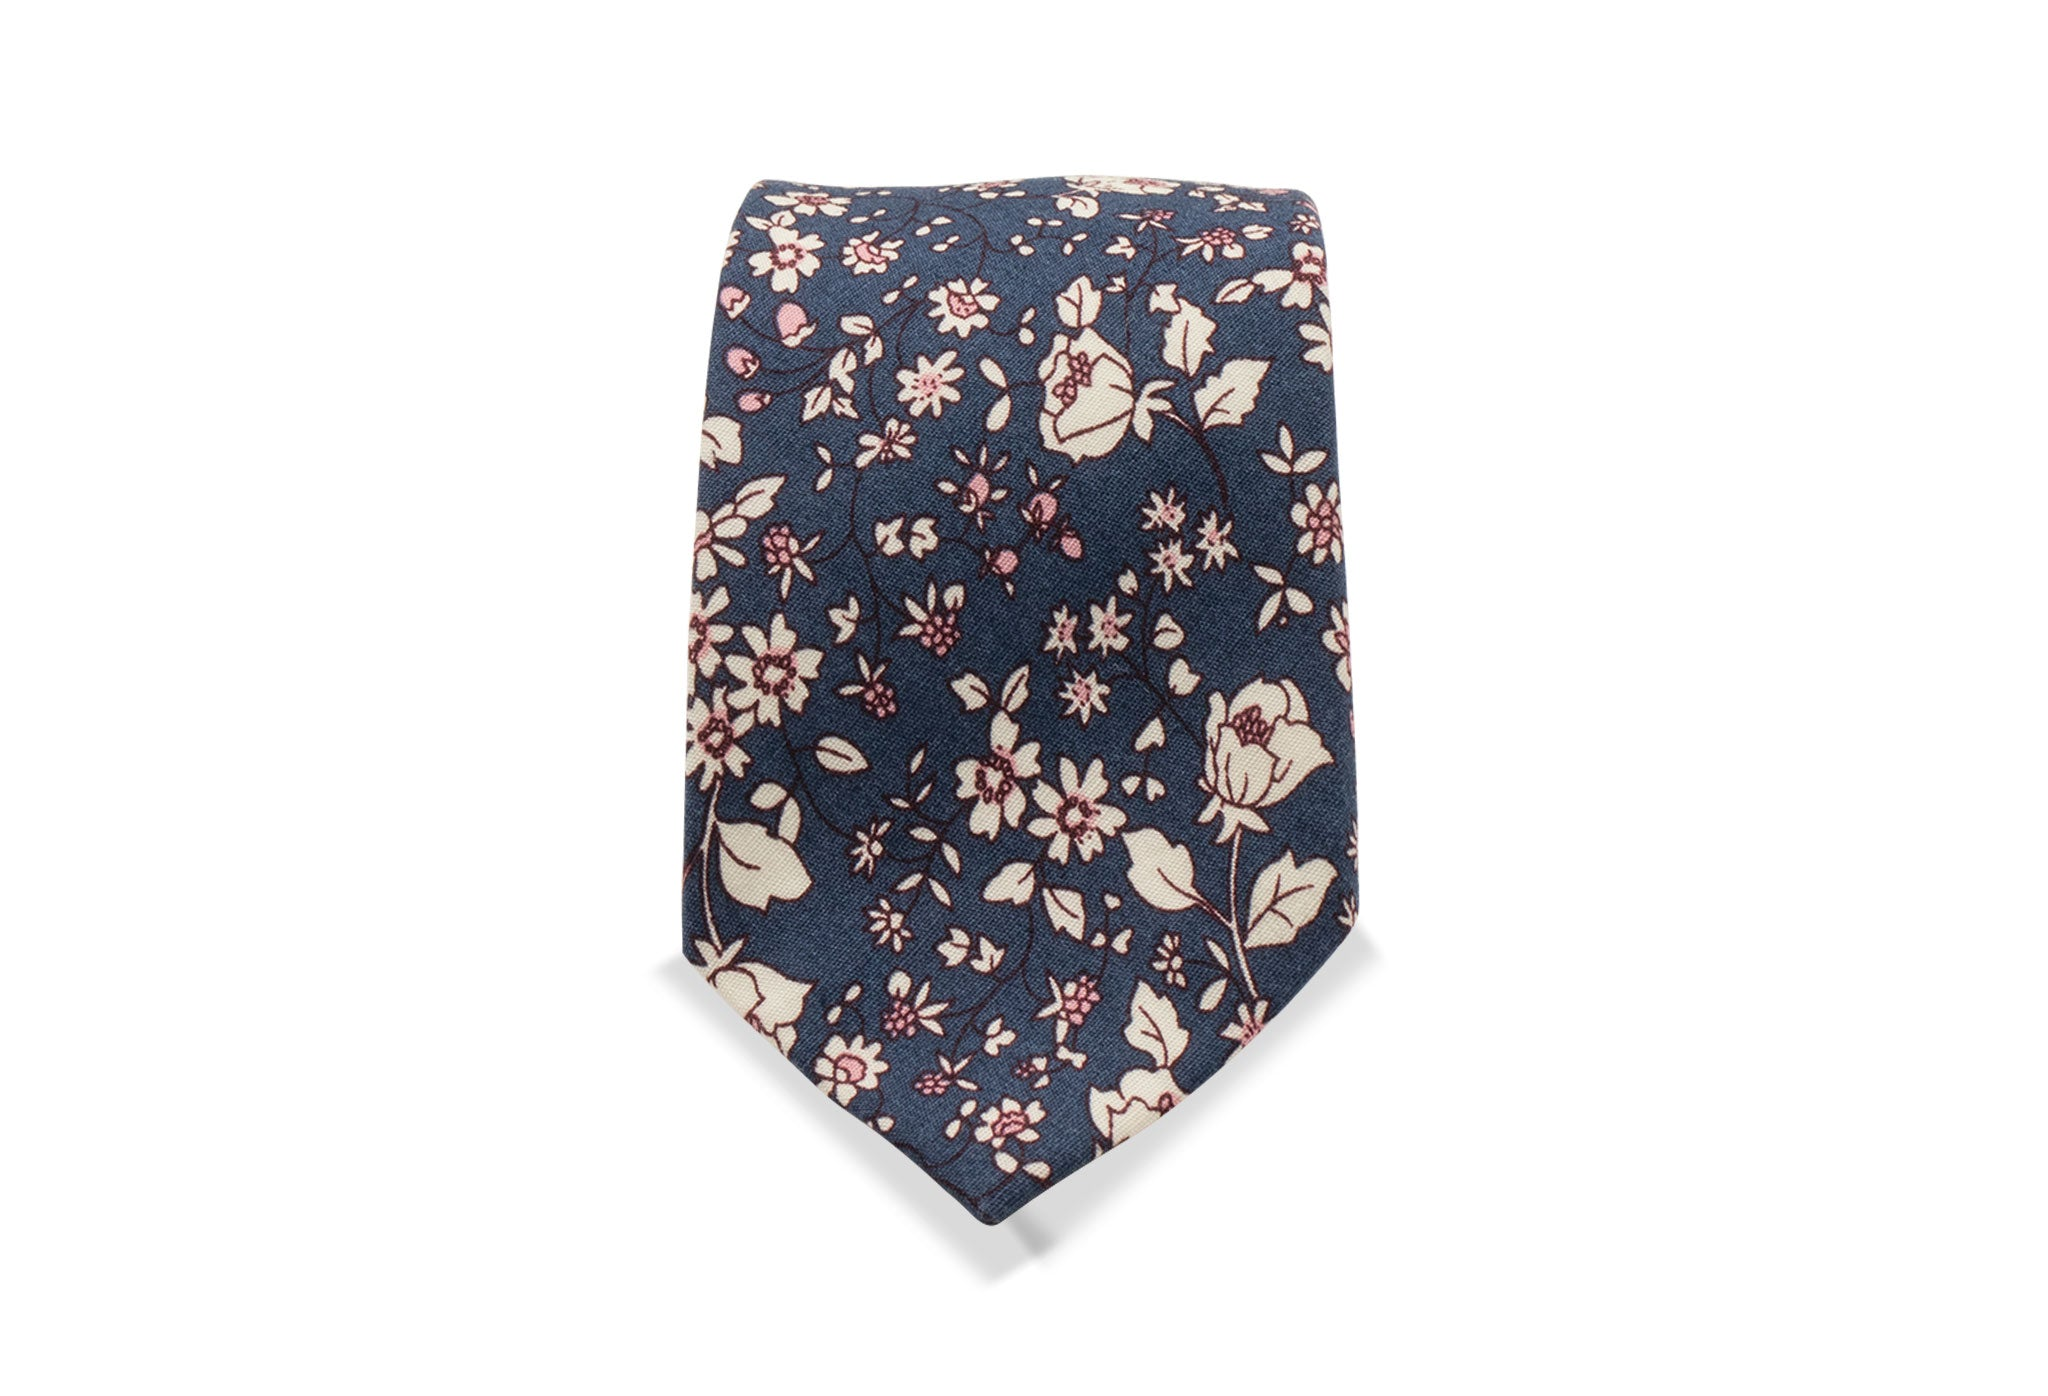 Abuta Japanese Cotton Tie & Pocket Square